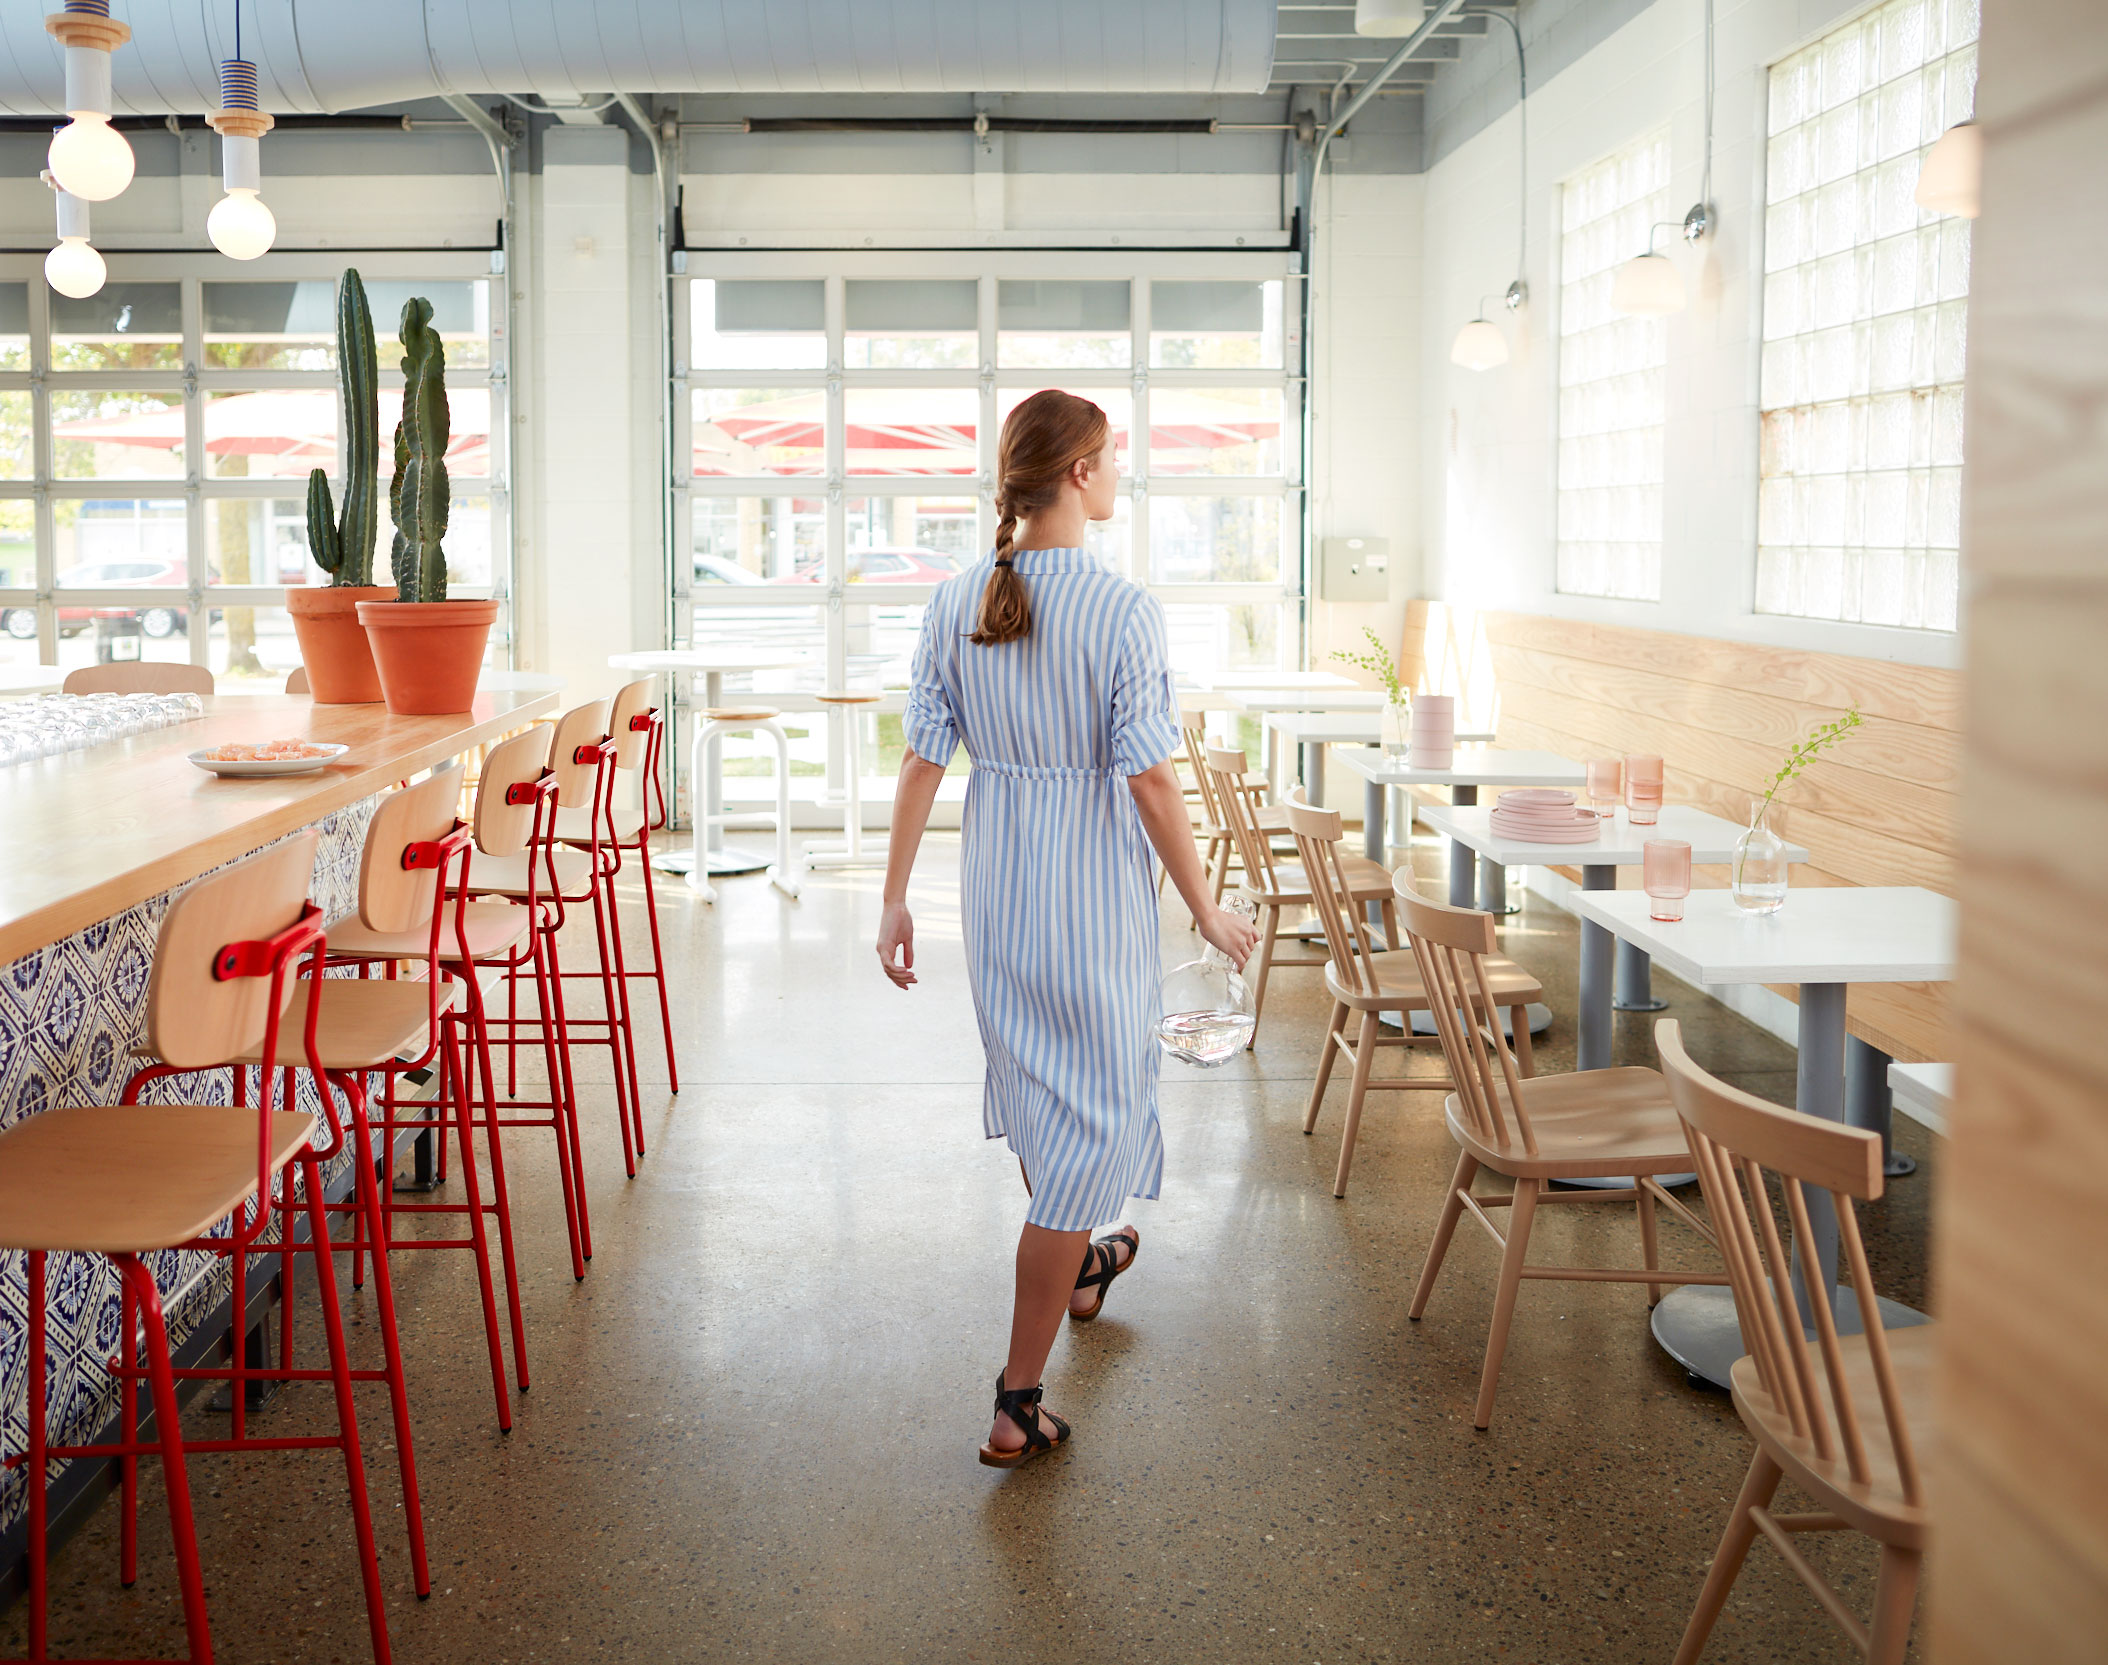 Reece barstools and Hugh chairs fill the inside of a modern, sunny diner.